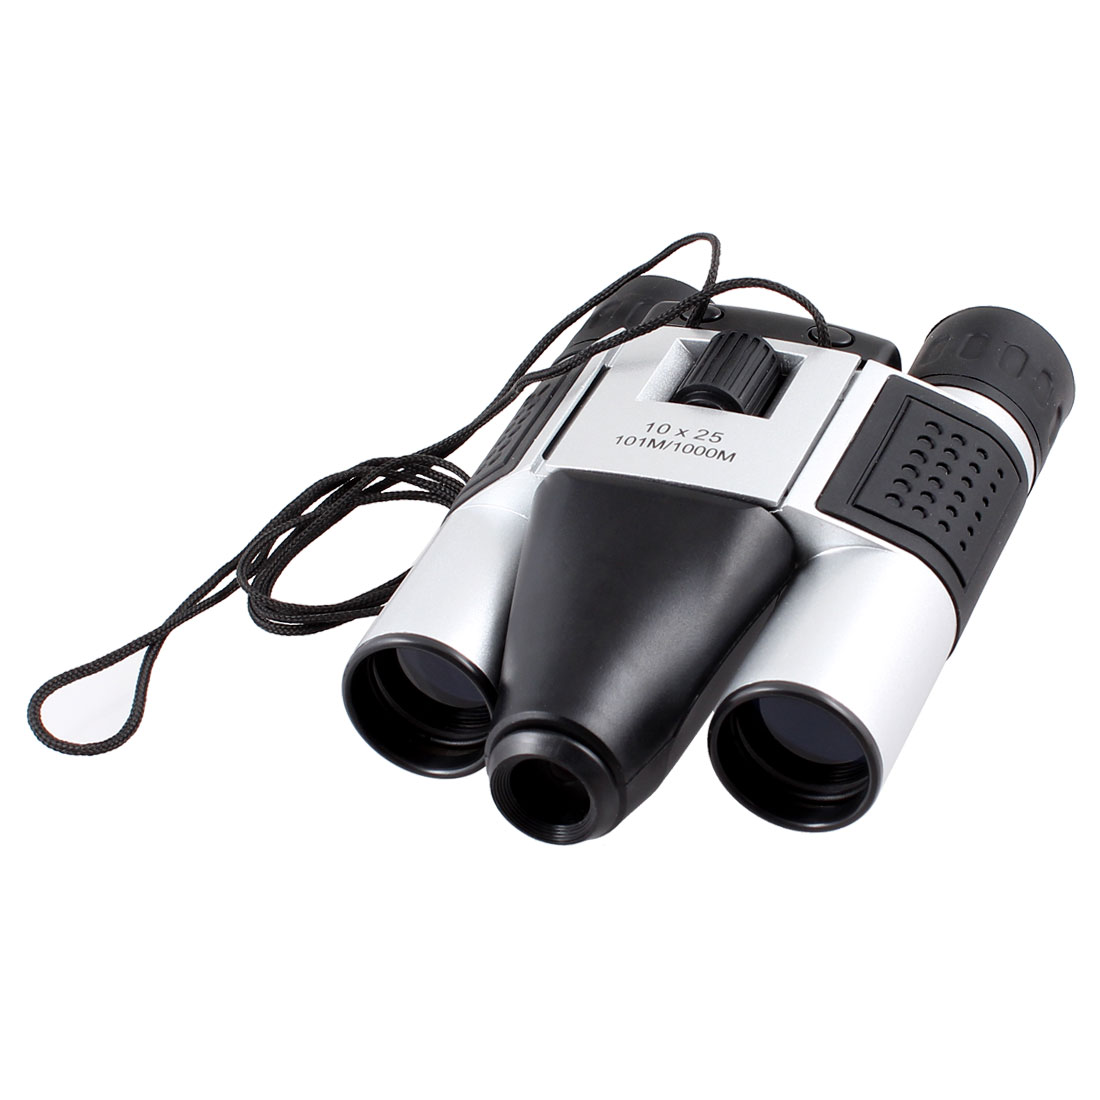 DT08 1.3M CMOS 10x25 Digital Camera Binoculars Video Recording Telescope